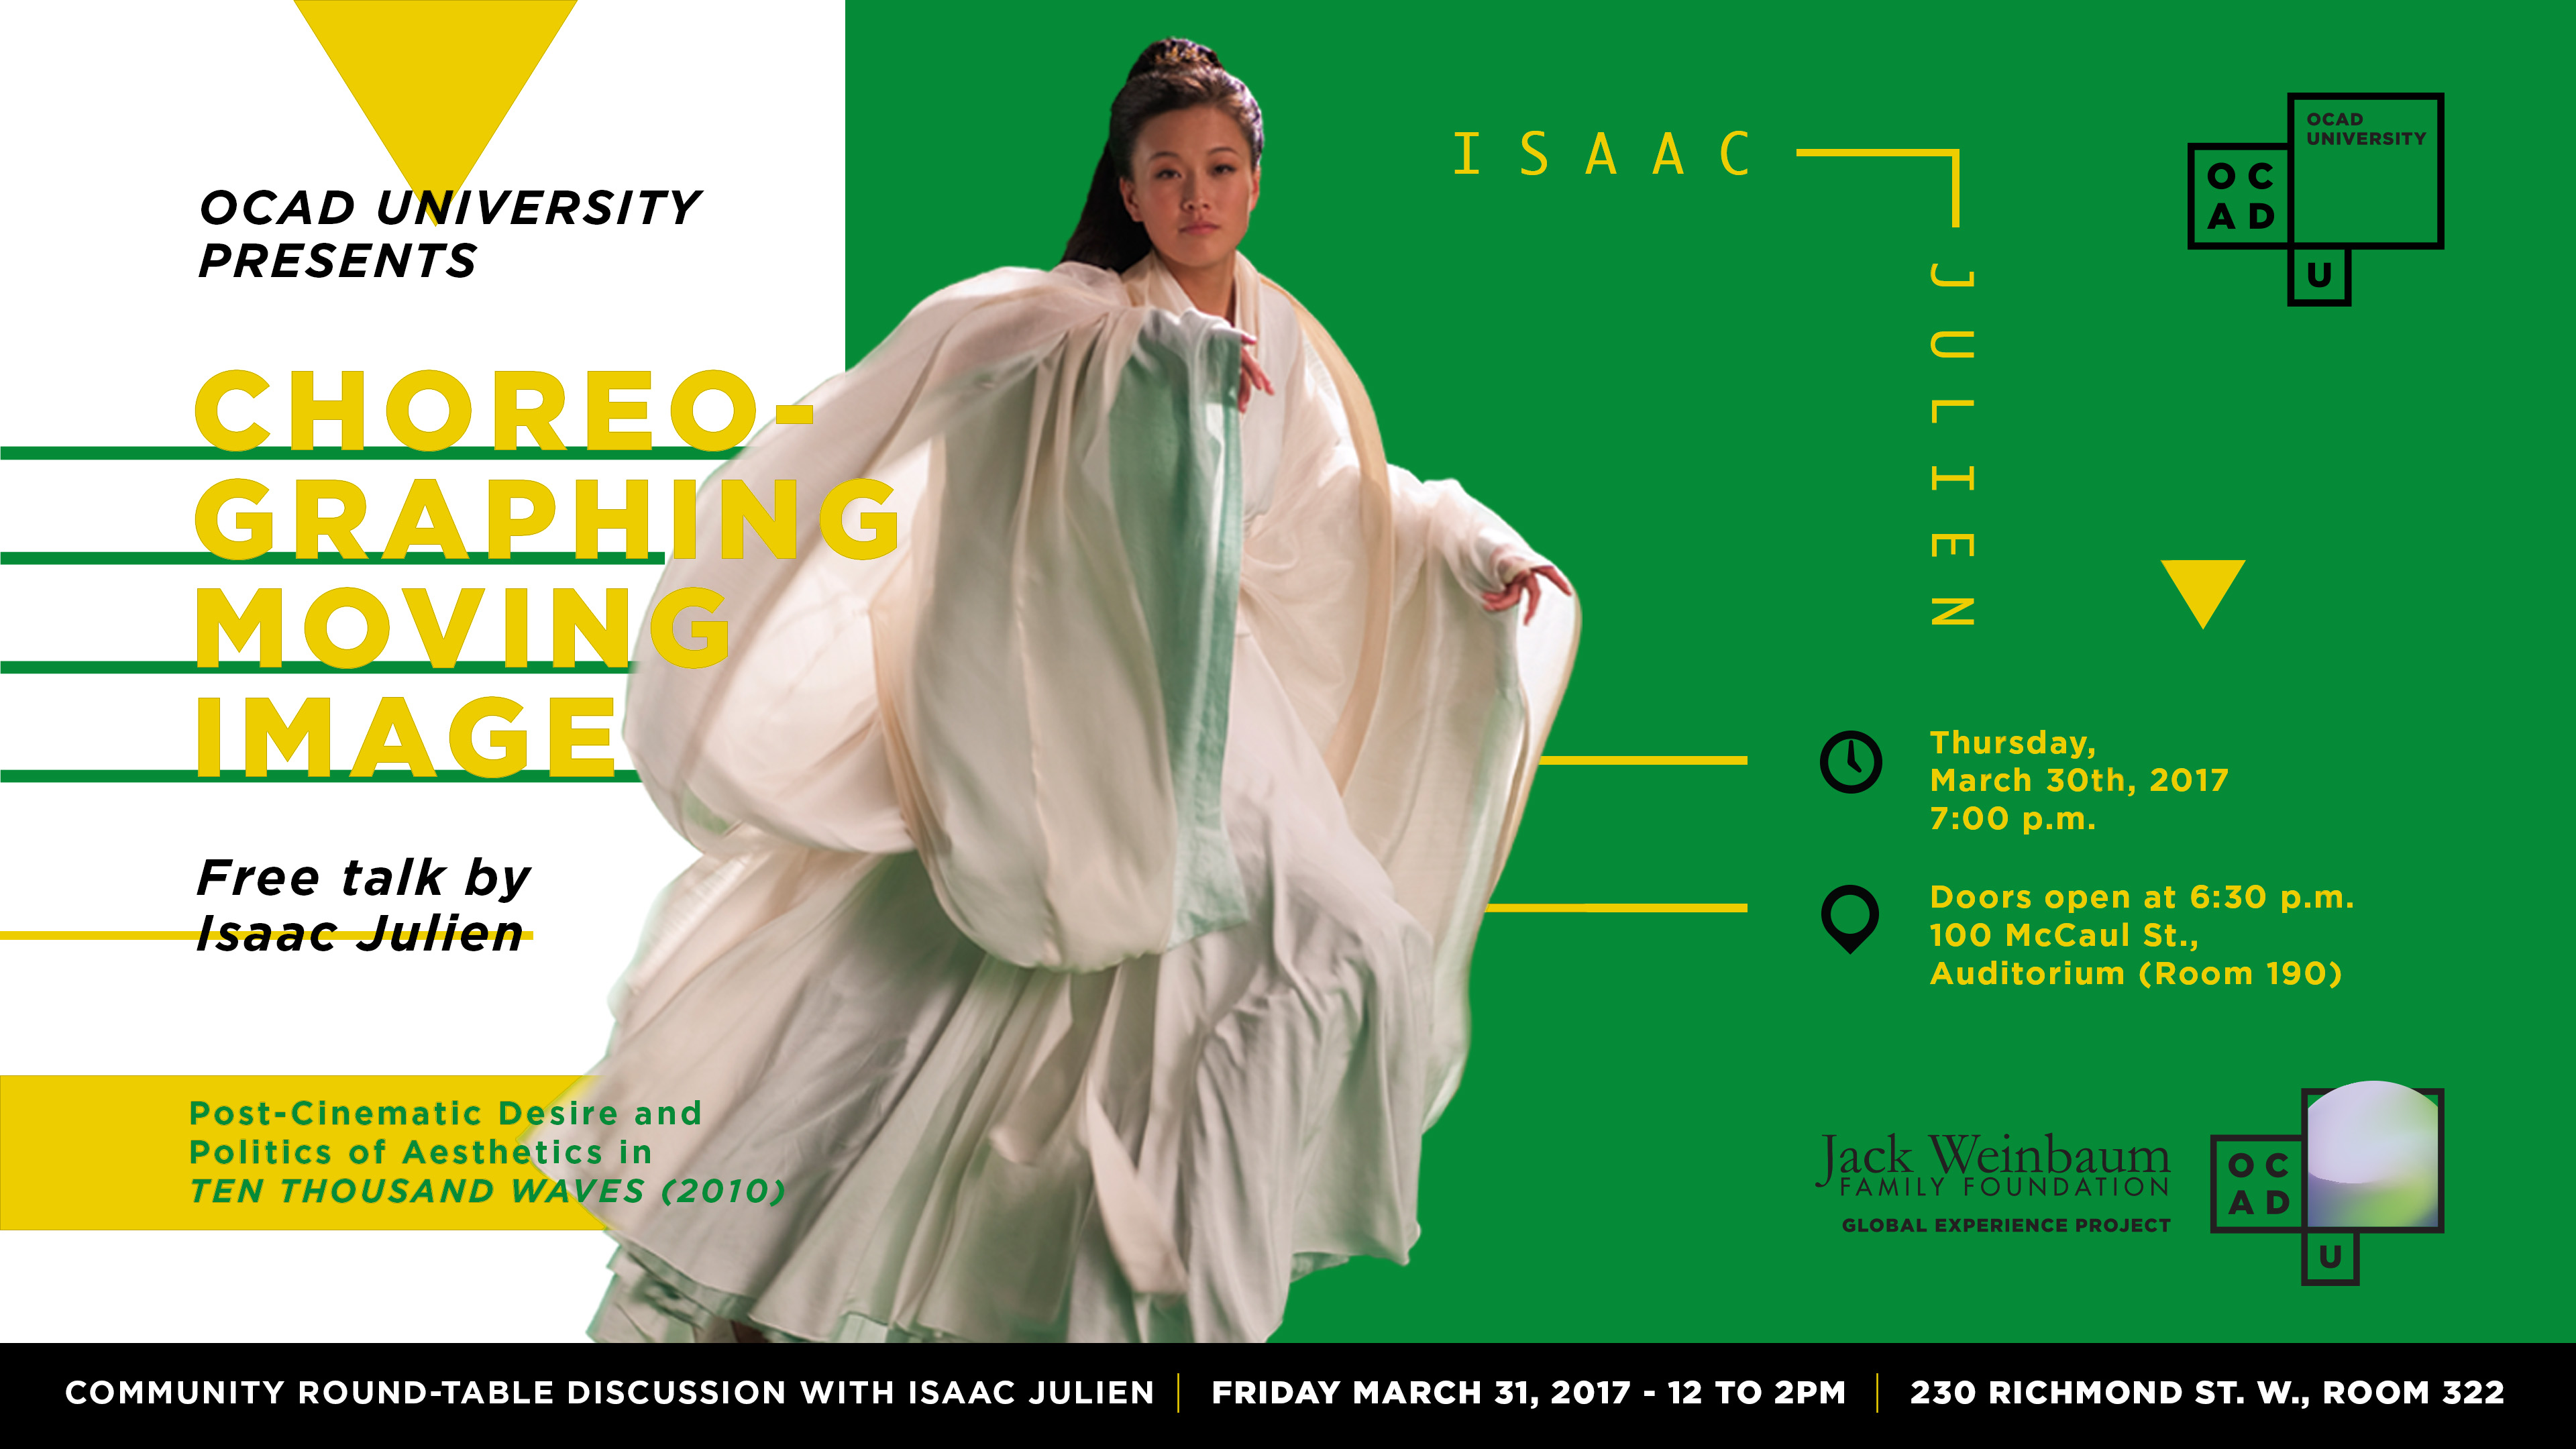 OCAD U presents Choreographing Moving Image poster with event info and photograph of woman in large flowing garment